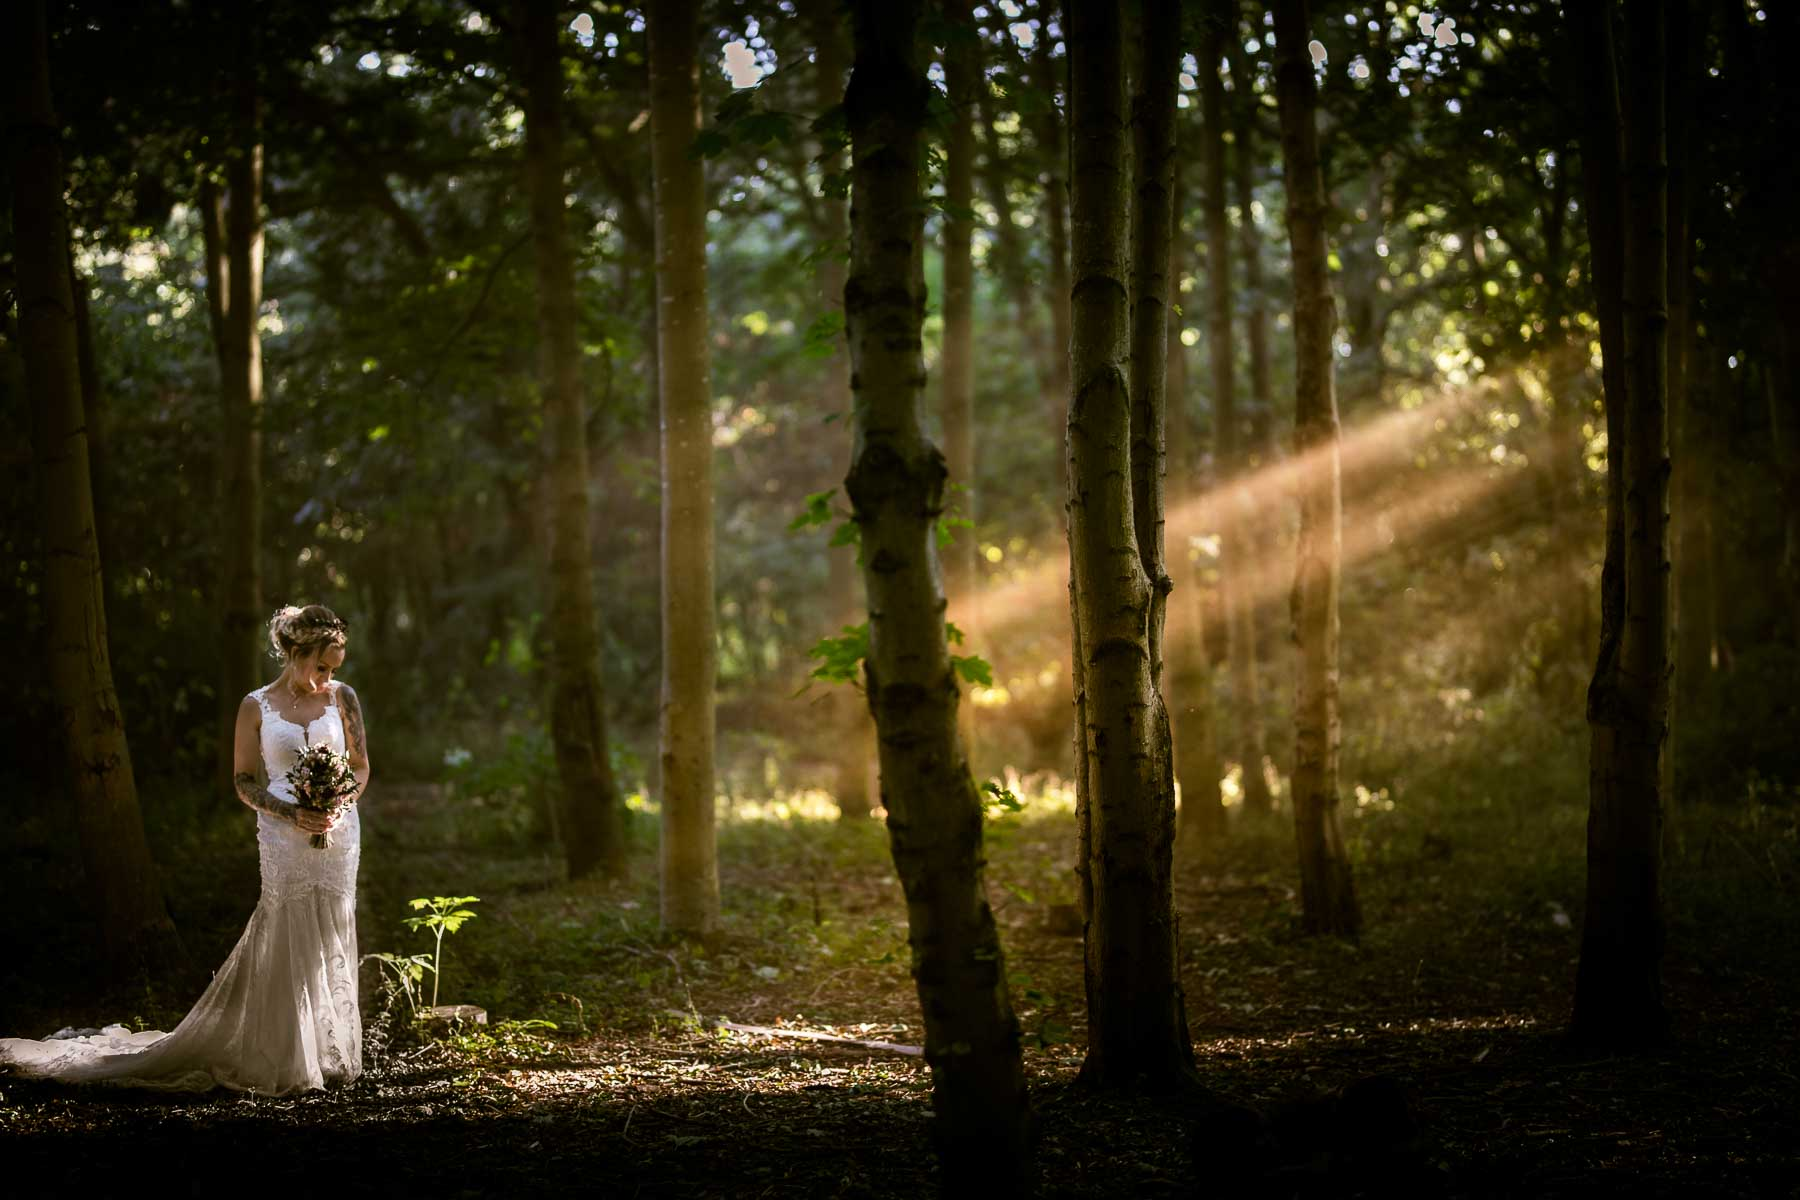 beautiful ethereal photo of a bride in a wood in northampton, with sun beams piecing the woodland canopy